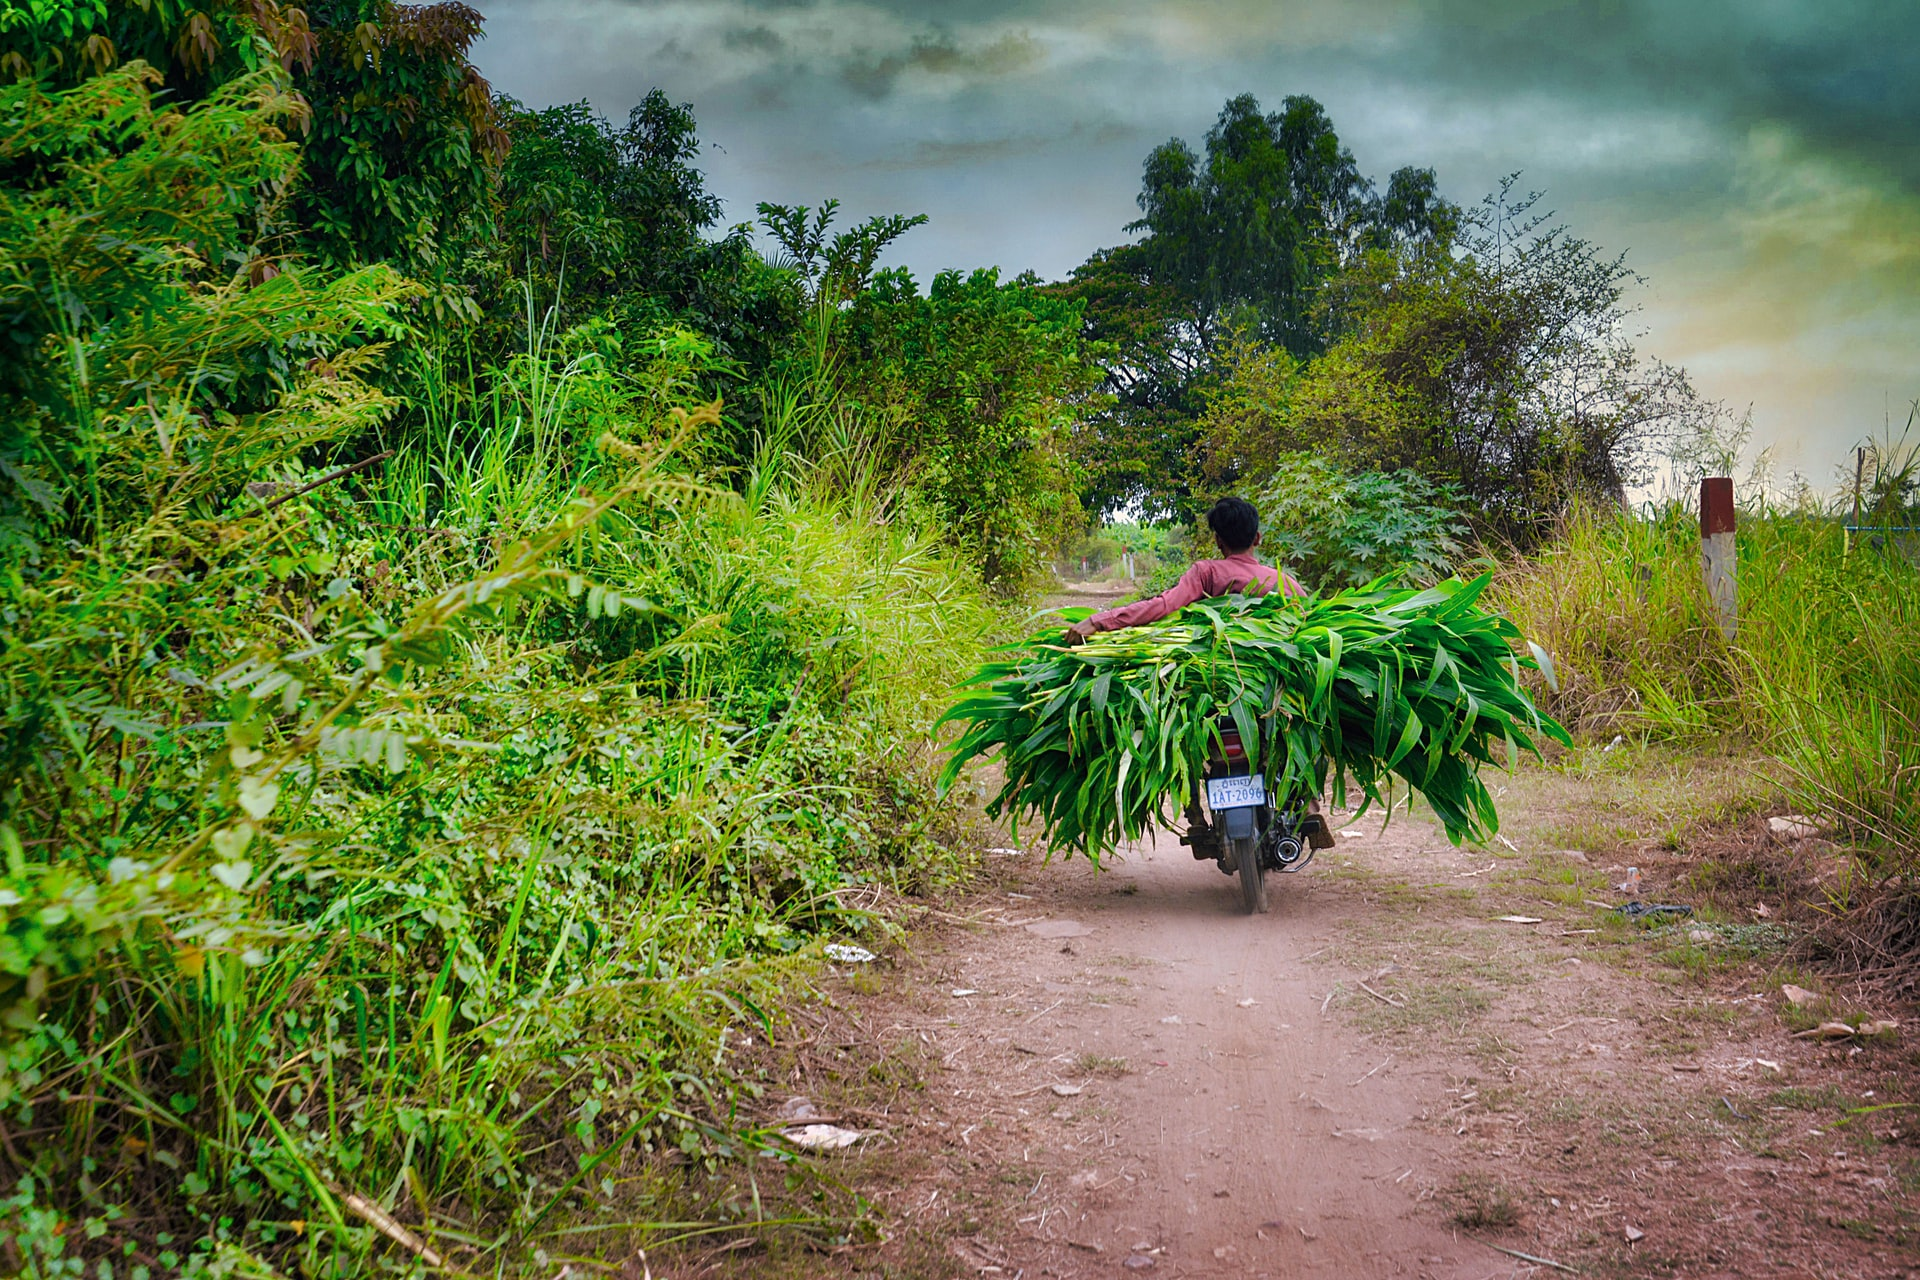 man in red shirt riding motorcycle loaded with green leaves countryside road in Cambodia, during daytime